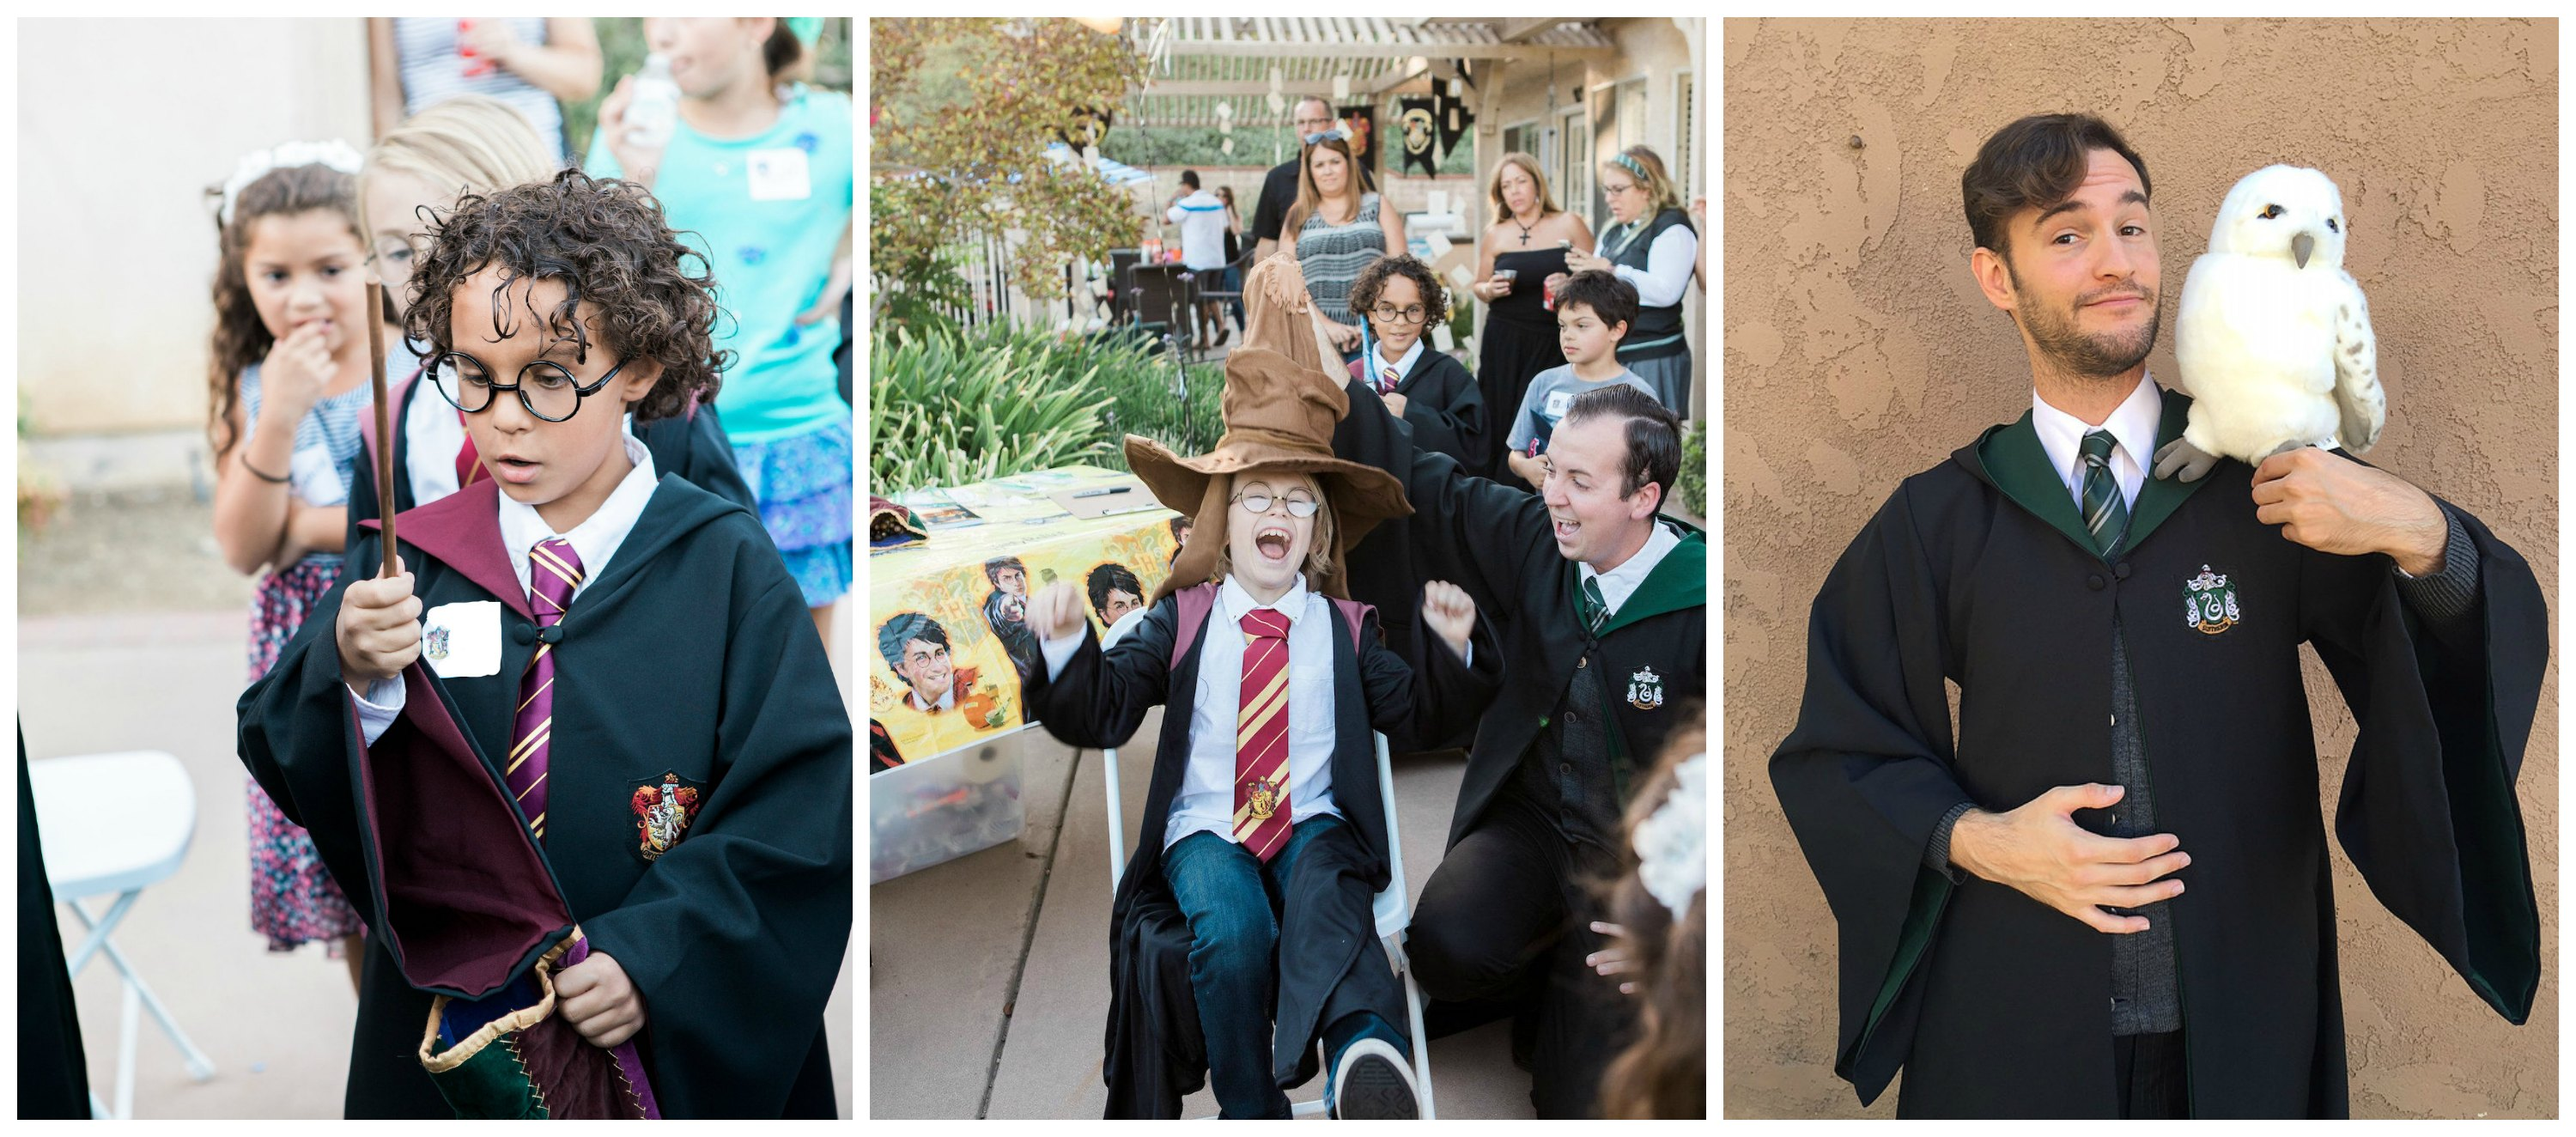 Harry Potter Party Characters